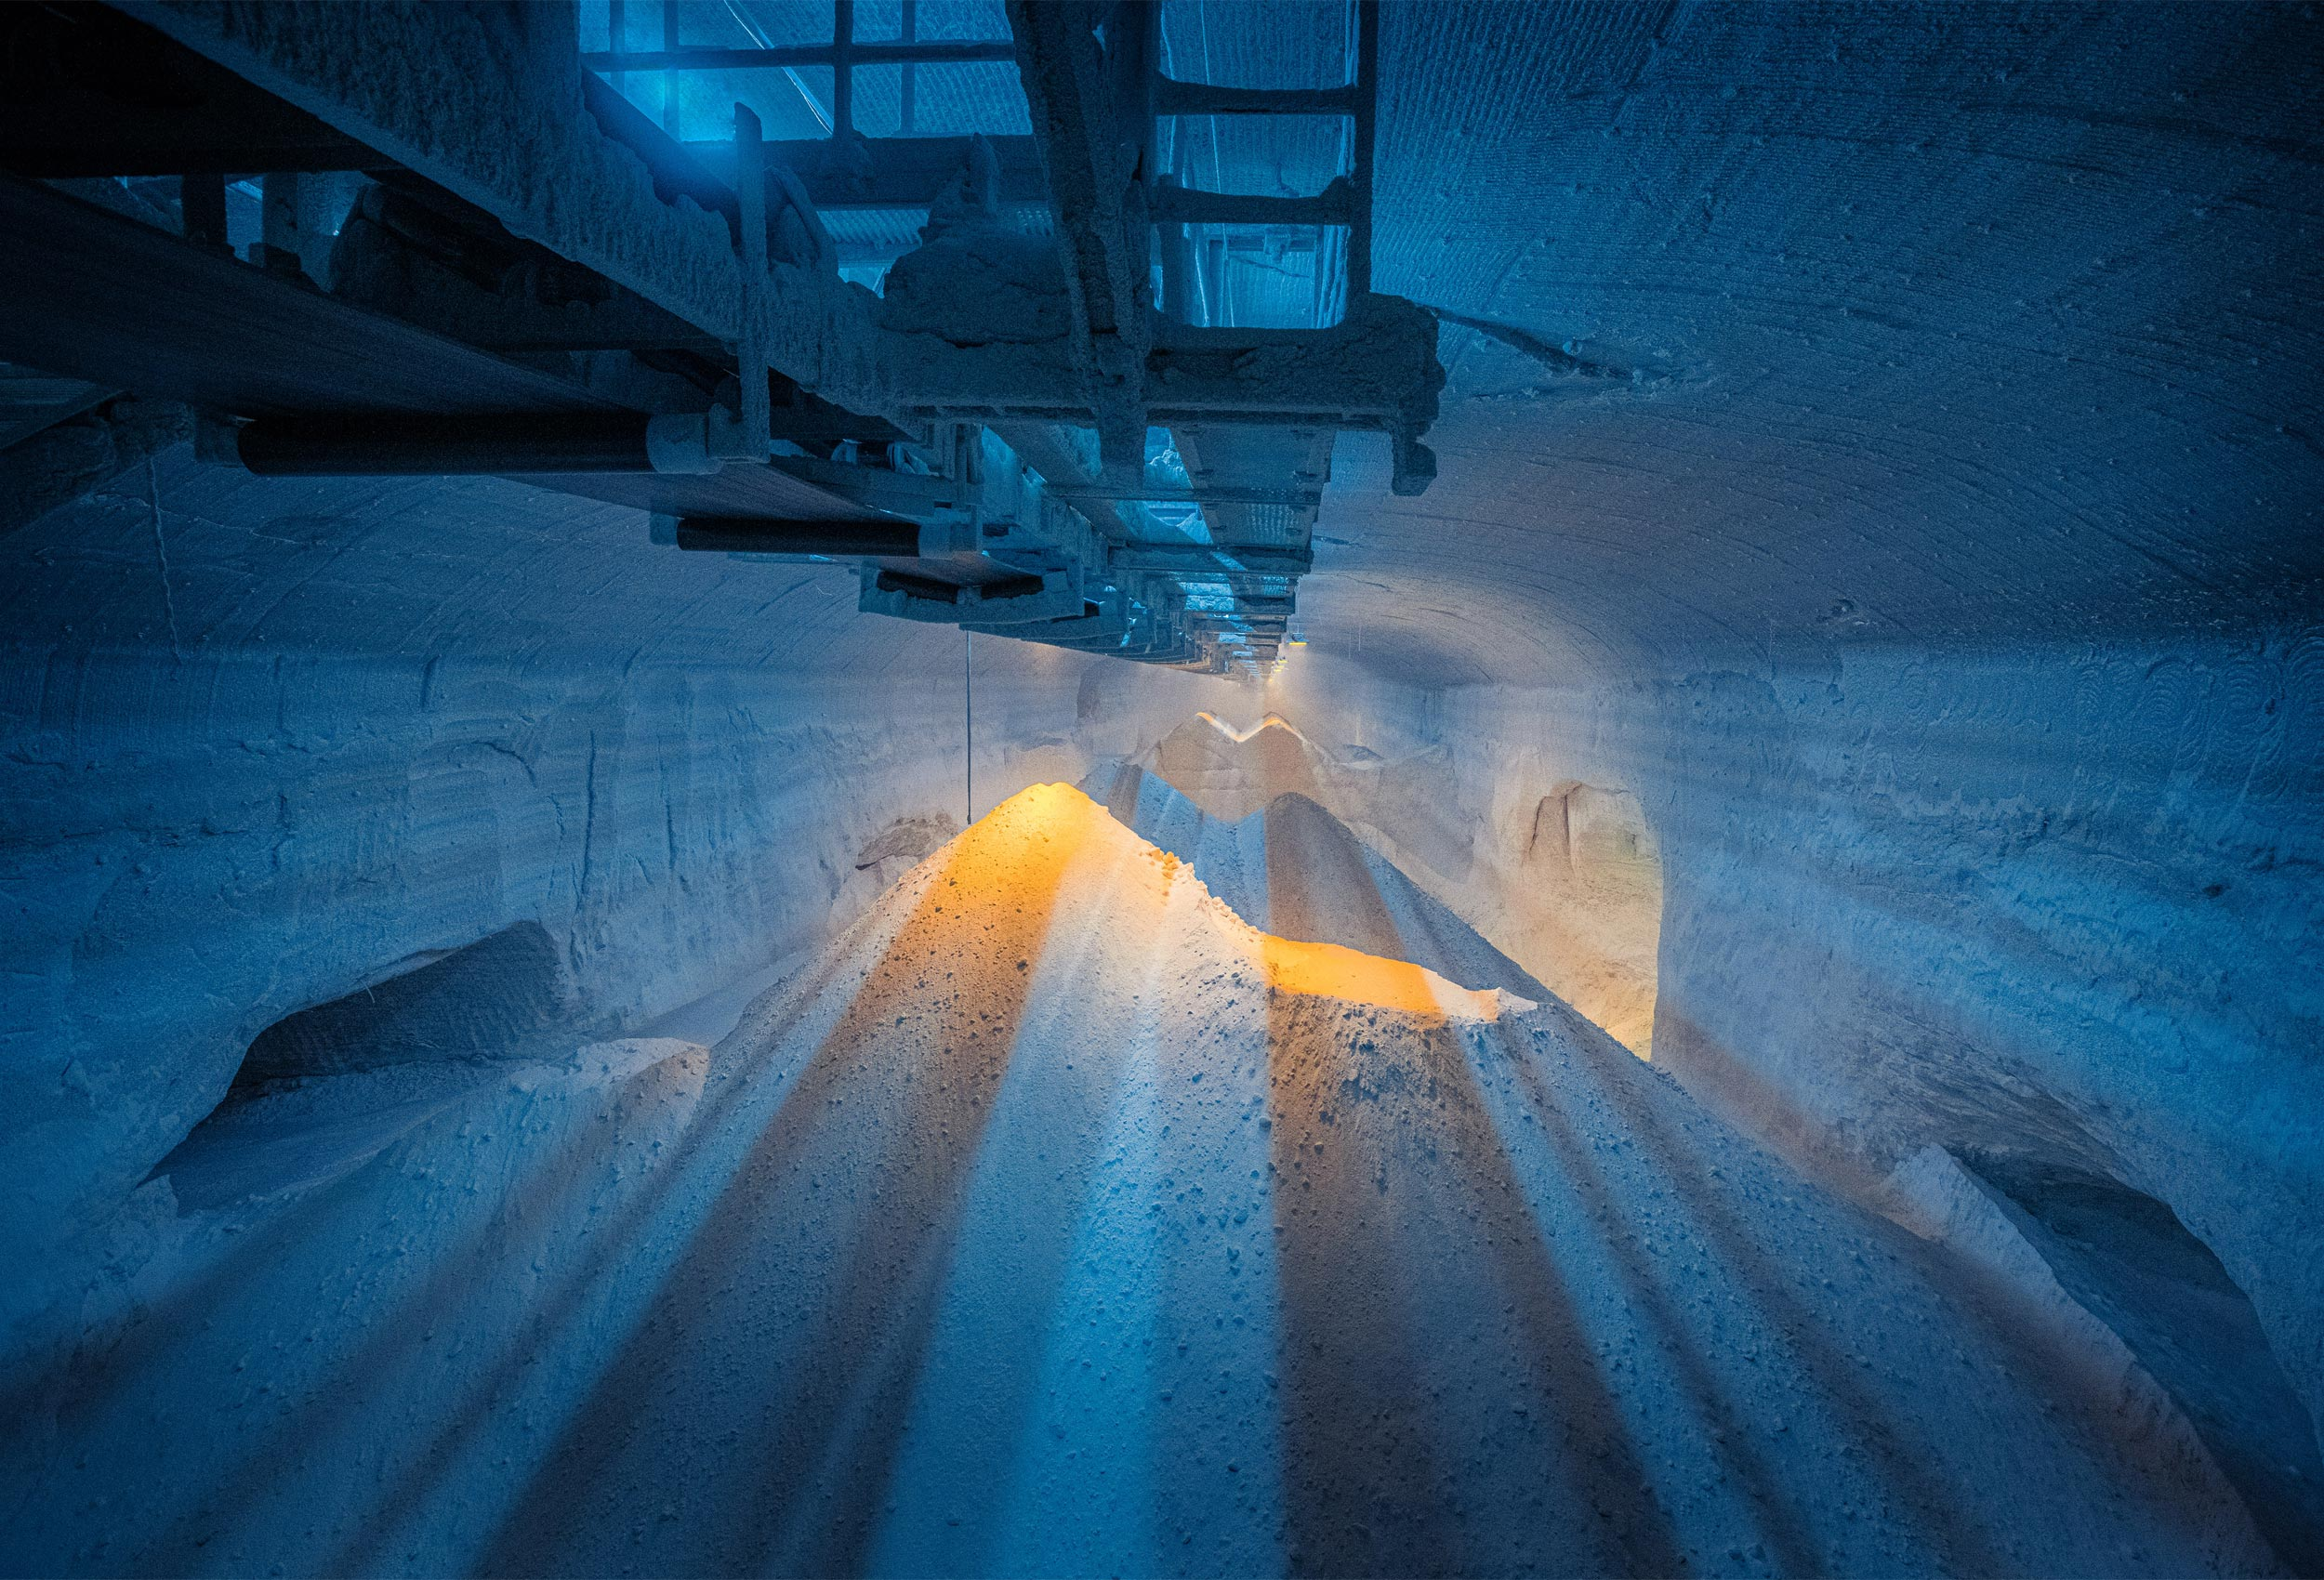 Underground potash storage cavern in Germany by corporate industrial photographer Kristopher Grunert.